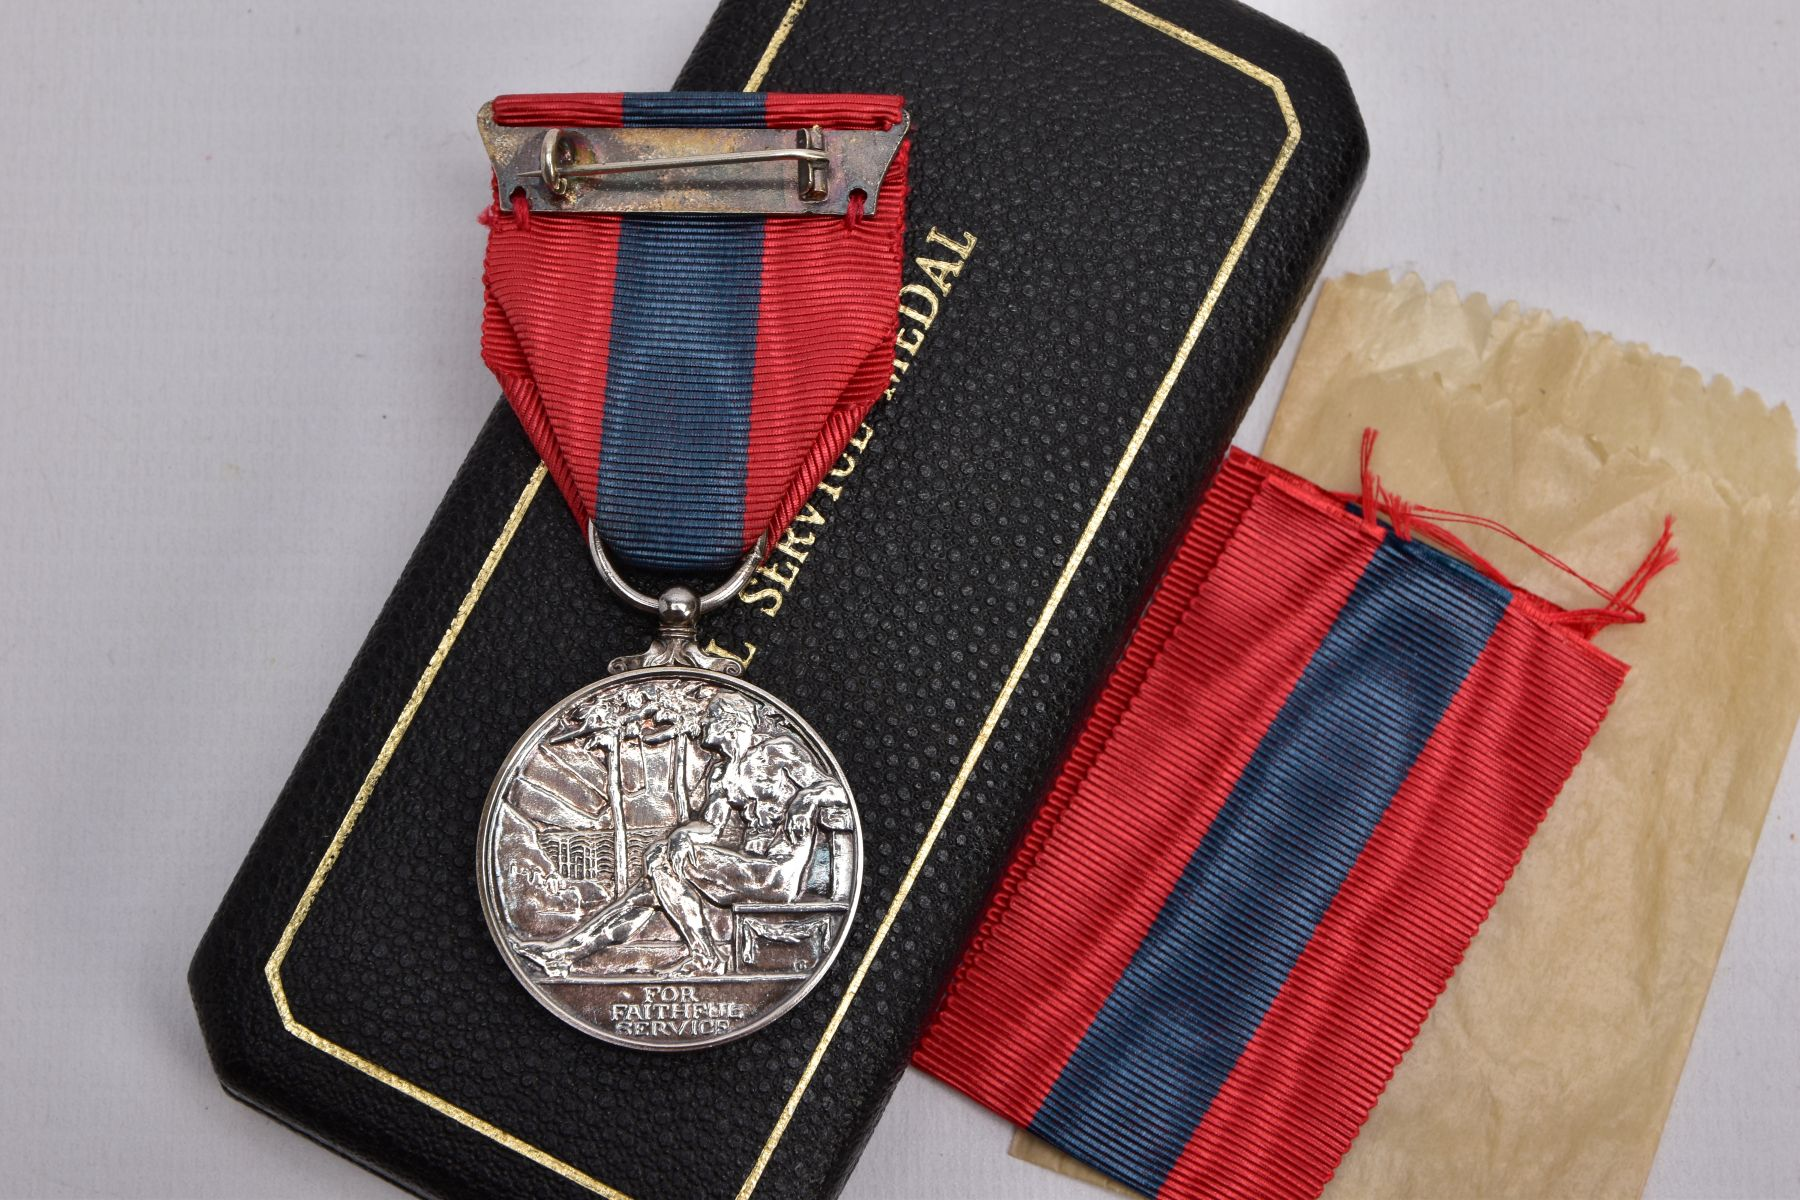 A BOXED ROYAL MINT IMPERIAL SERVICE MEDAL named to Hubert Martin, ERII Dei-Gratia 1955 version - Image 2 of 4